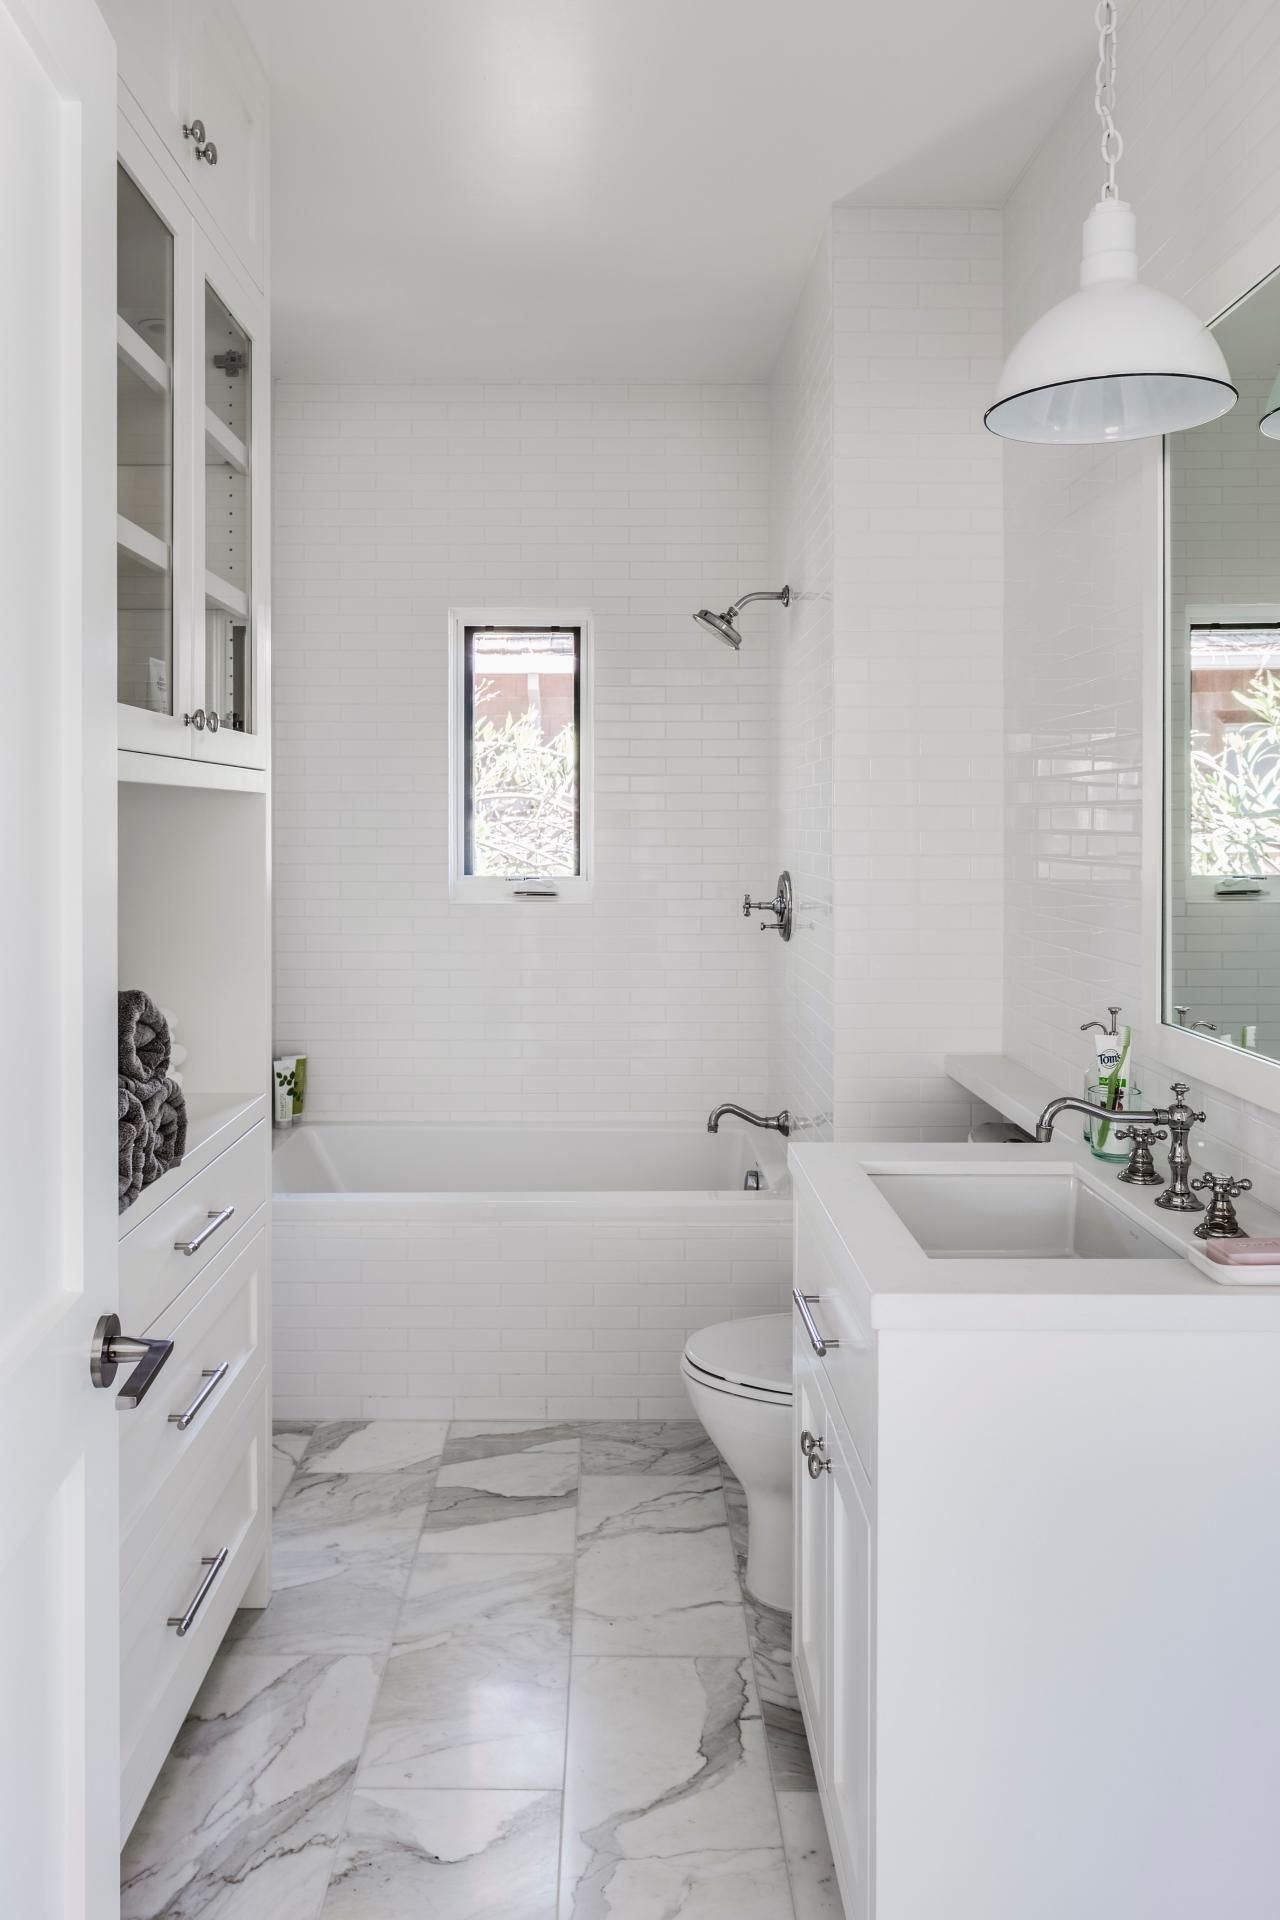 Small Home With Big Style | White subway tiles, Built ins and Subway ...